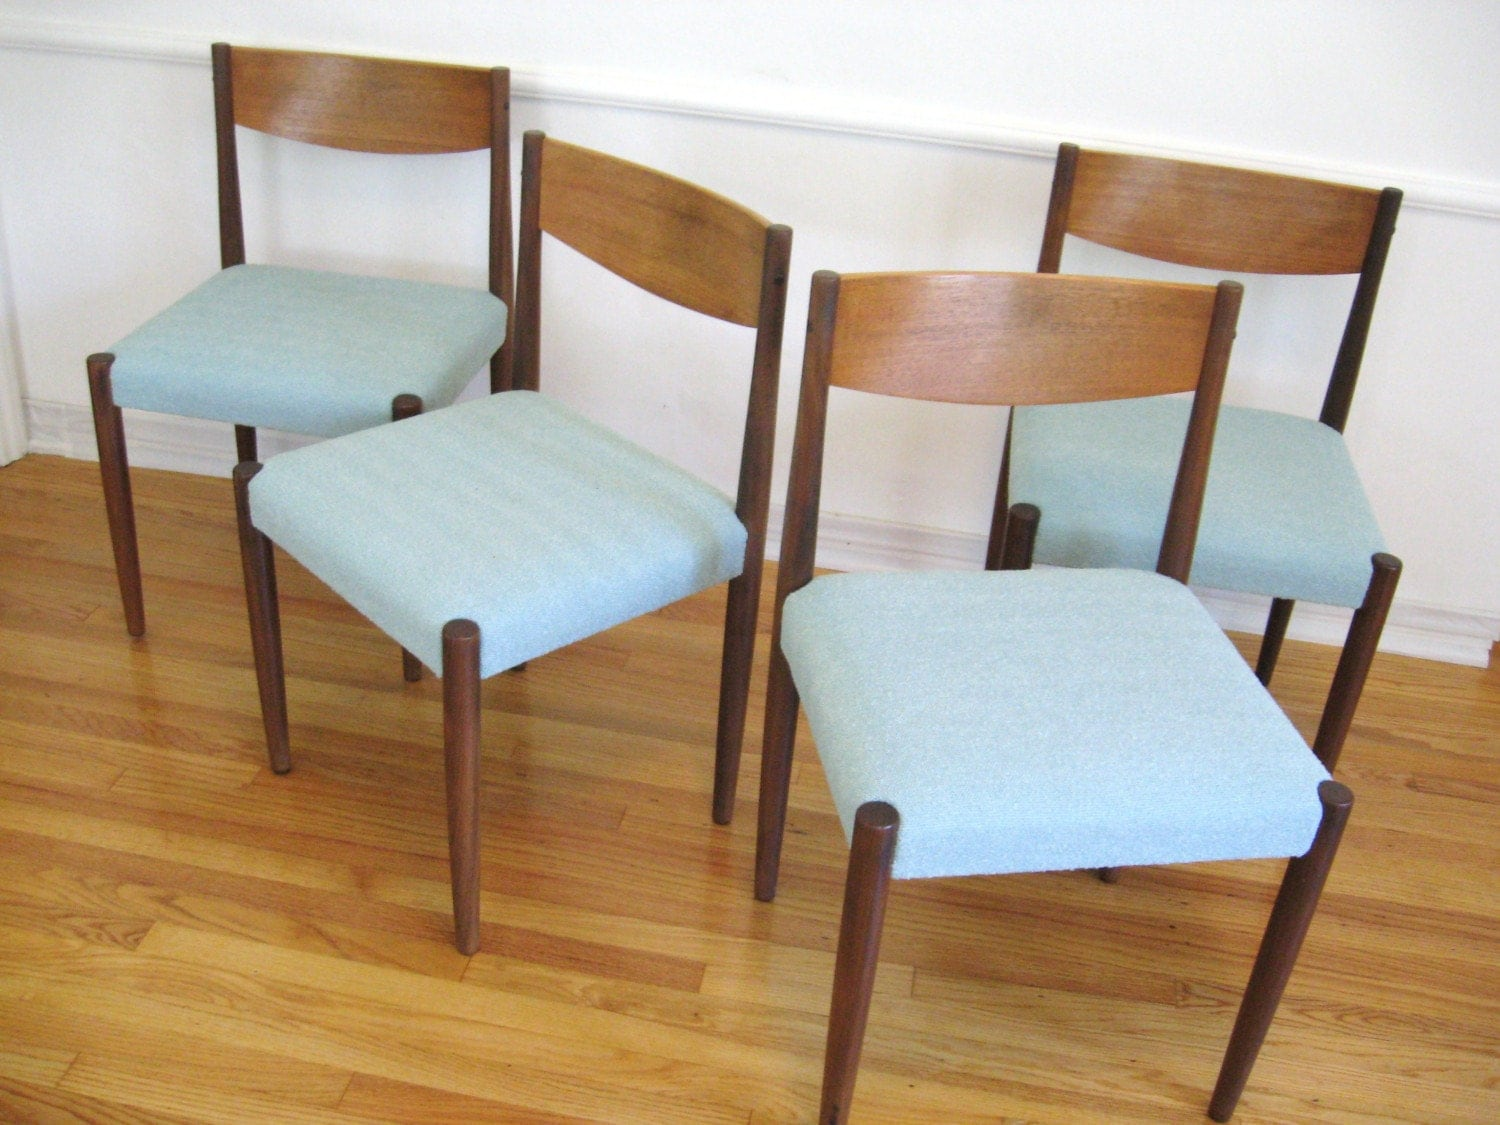 60s danish modern teak wood vintage dining chairs by fabulousmess - Retro dining room chairs ...